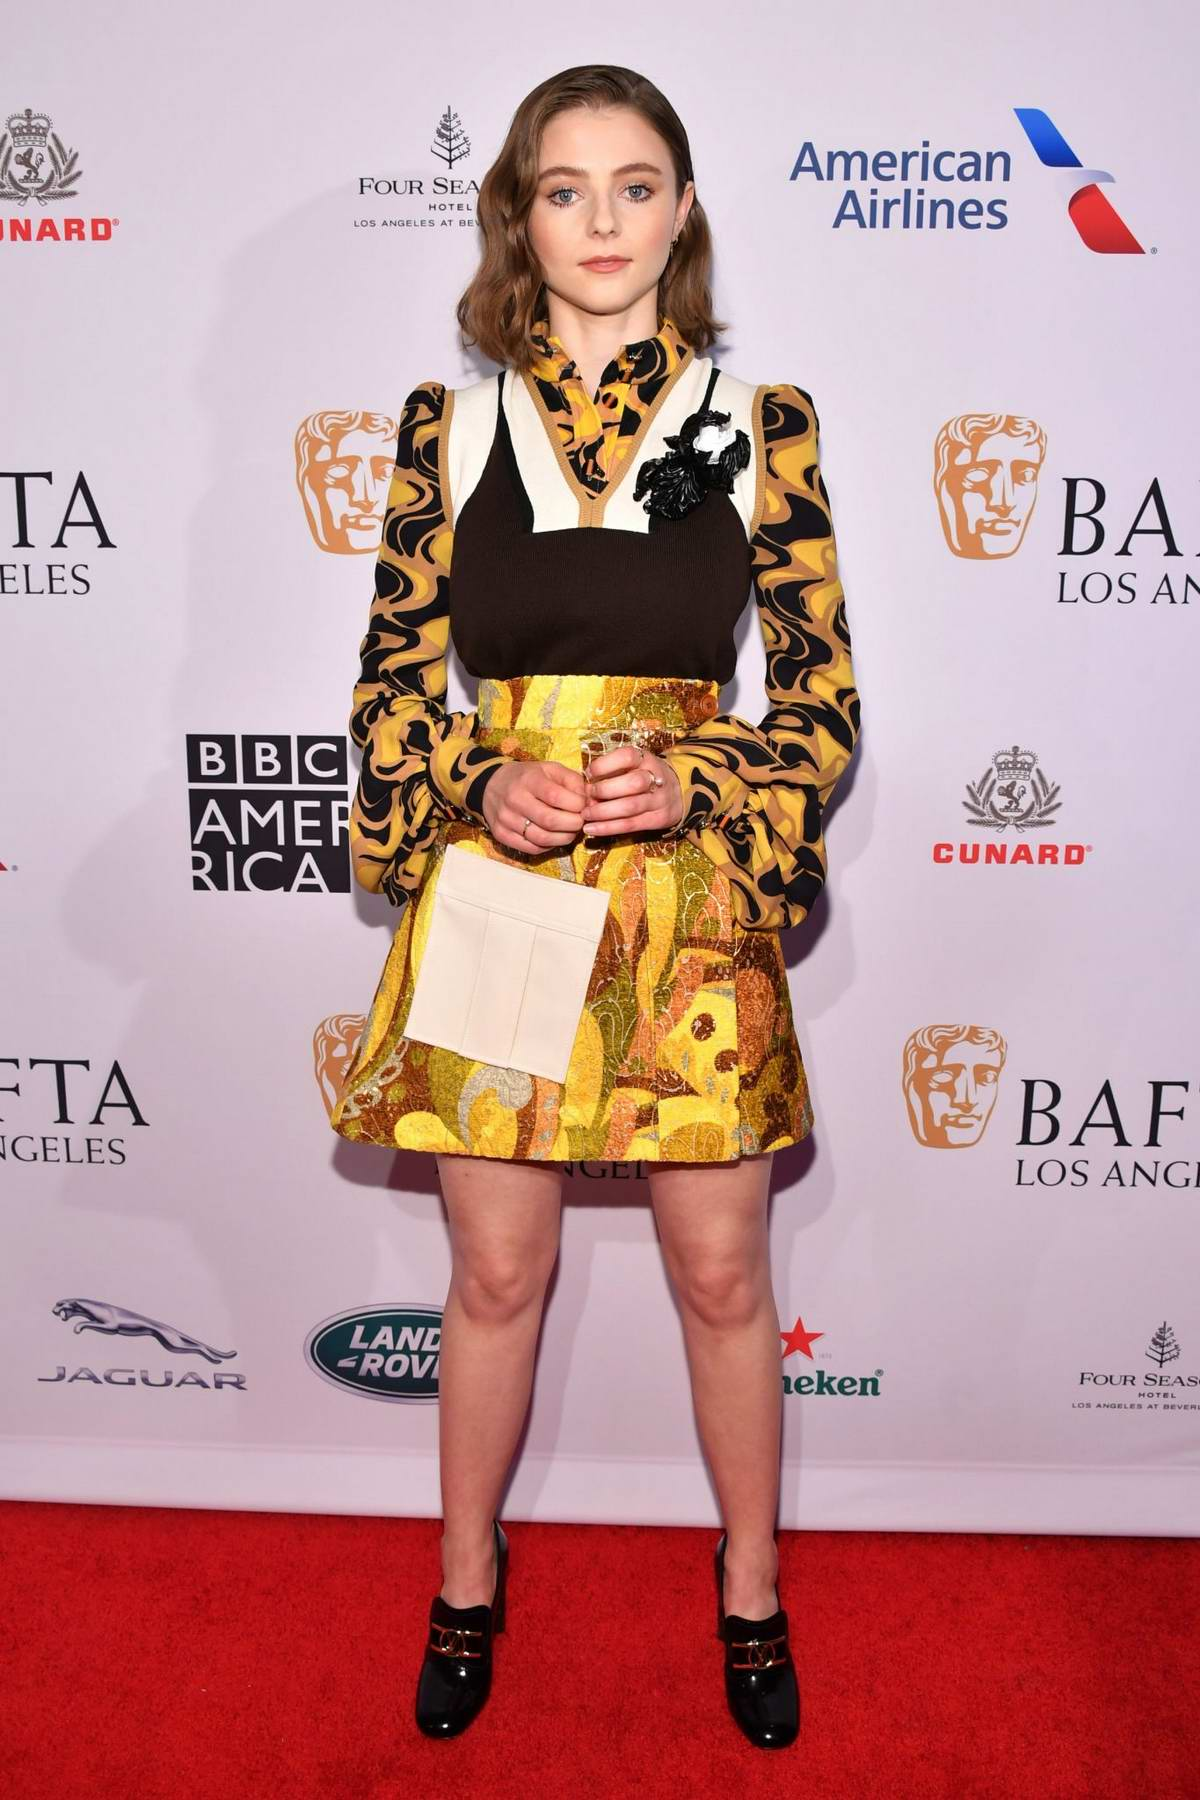 Thomasin McKenzie attends the BAFTA Los Angeles Tea Party 2020 at Four Seasons Hotel in Beverly Hills, California